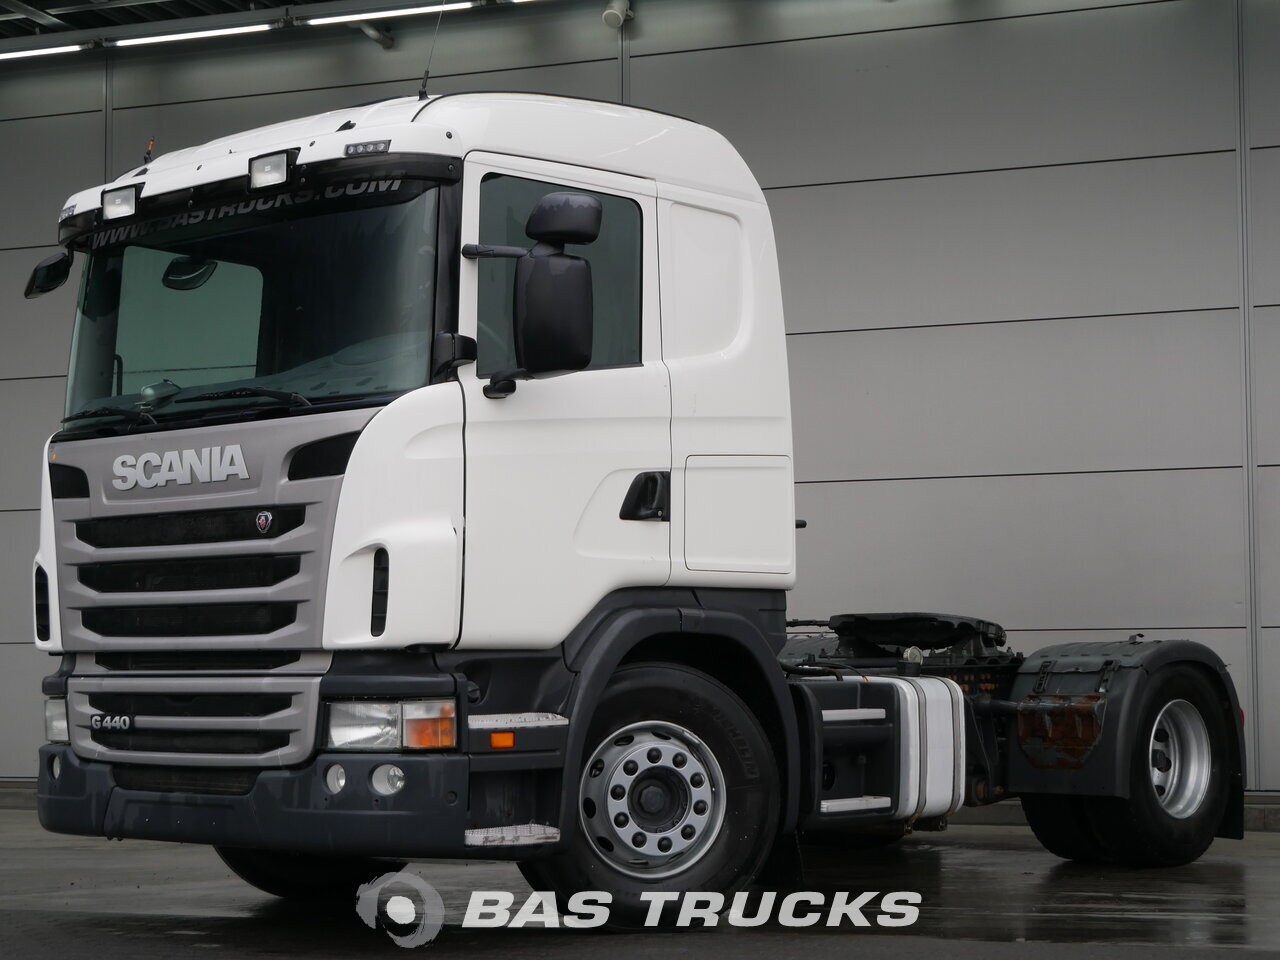 For sale at BAS Trucks: Scania G440 4X2 11/2011